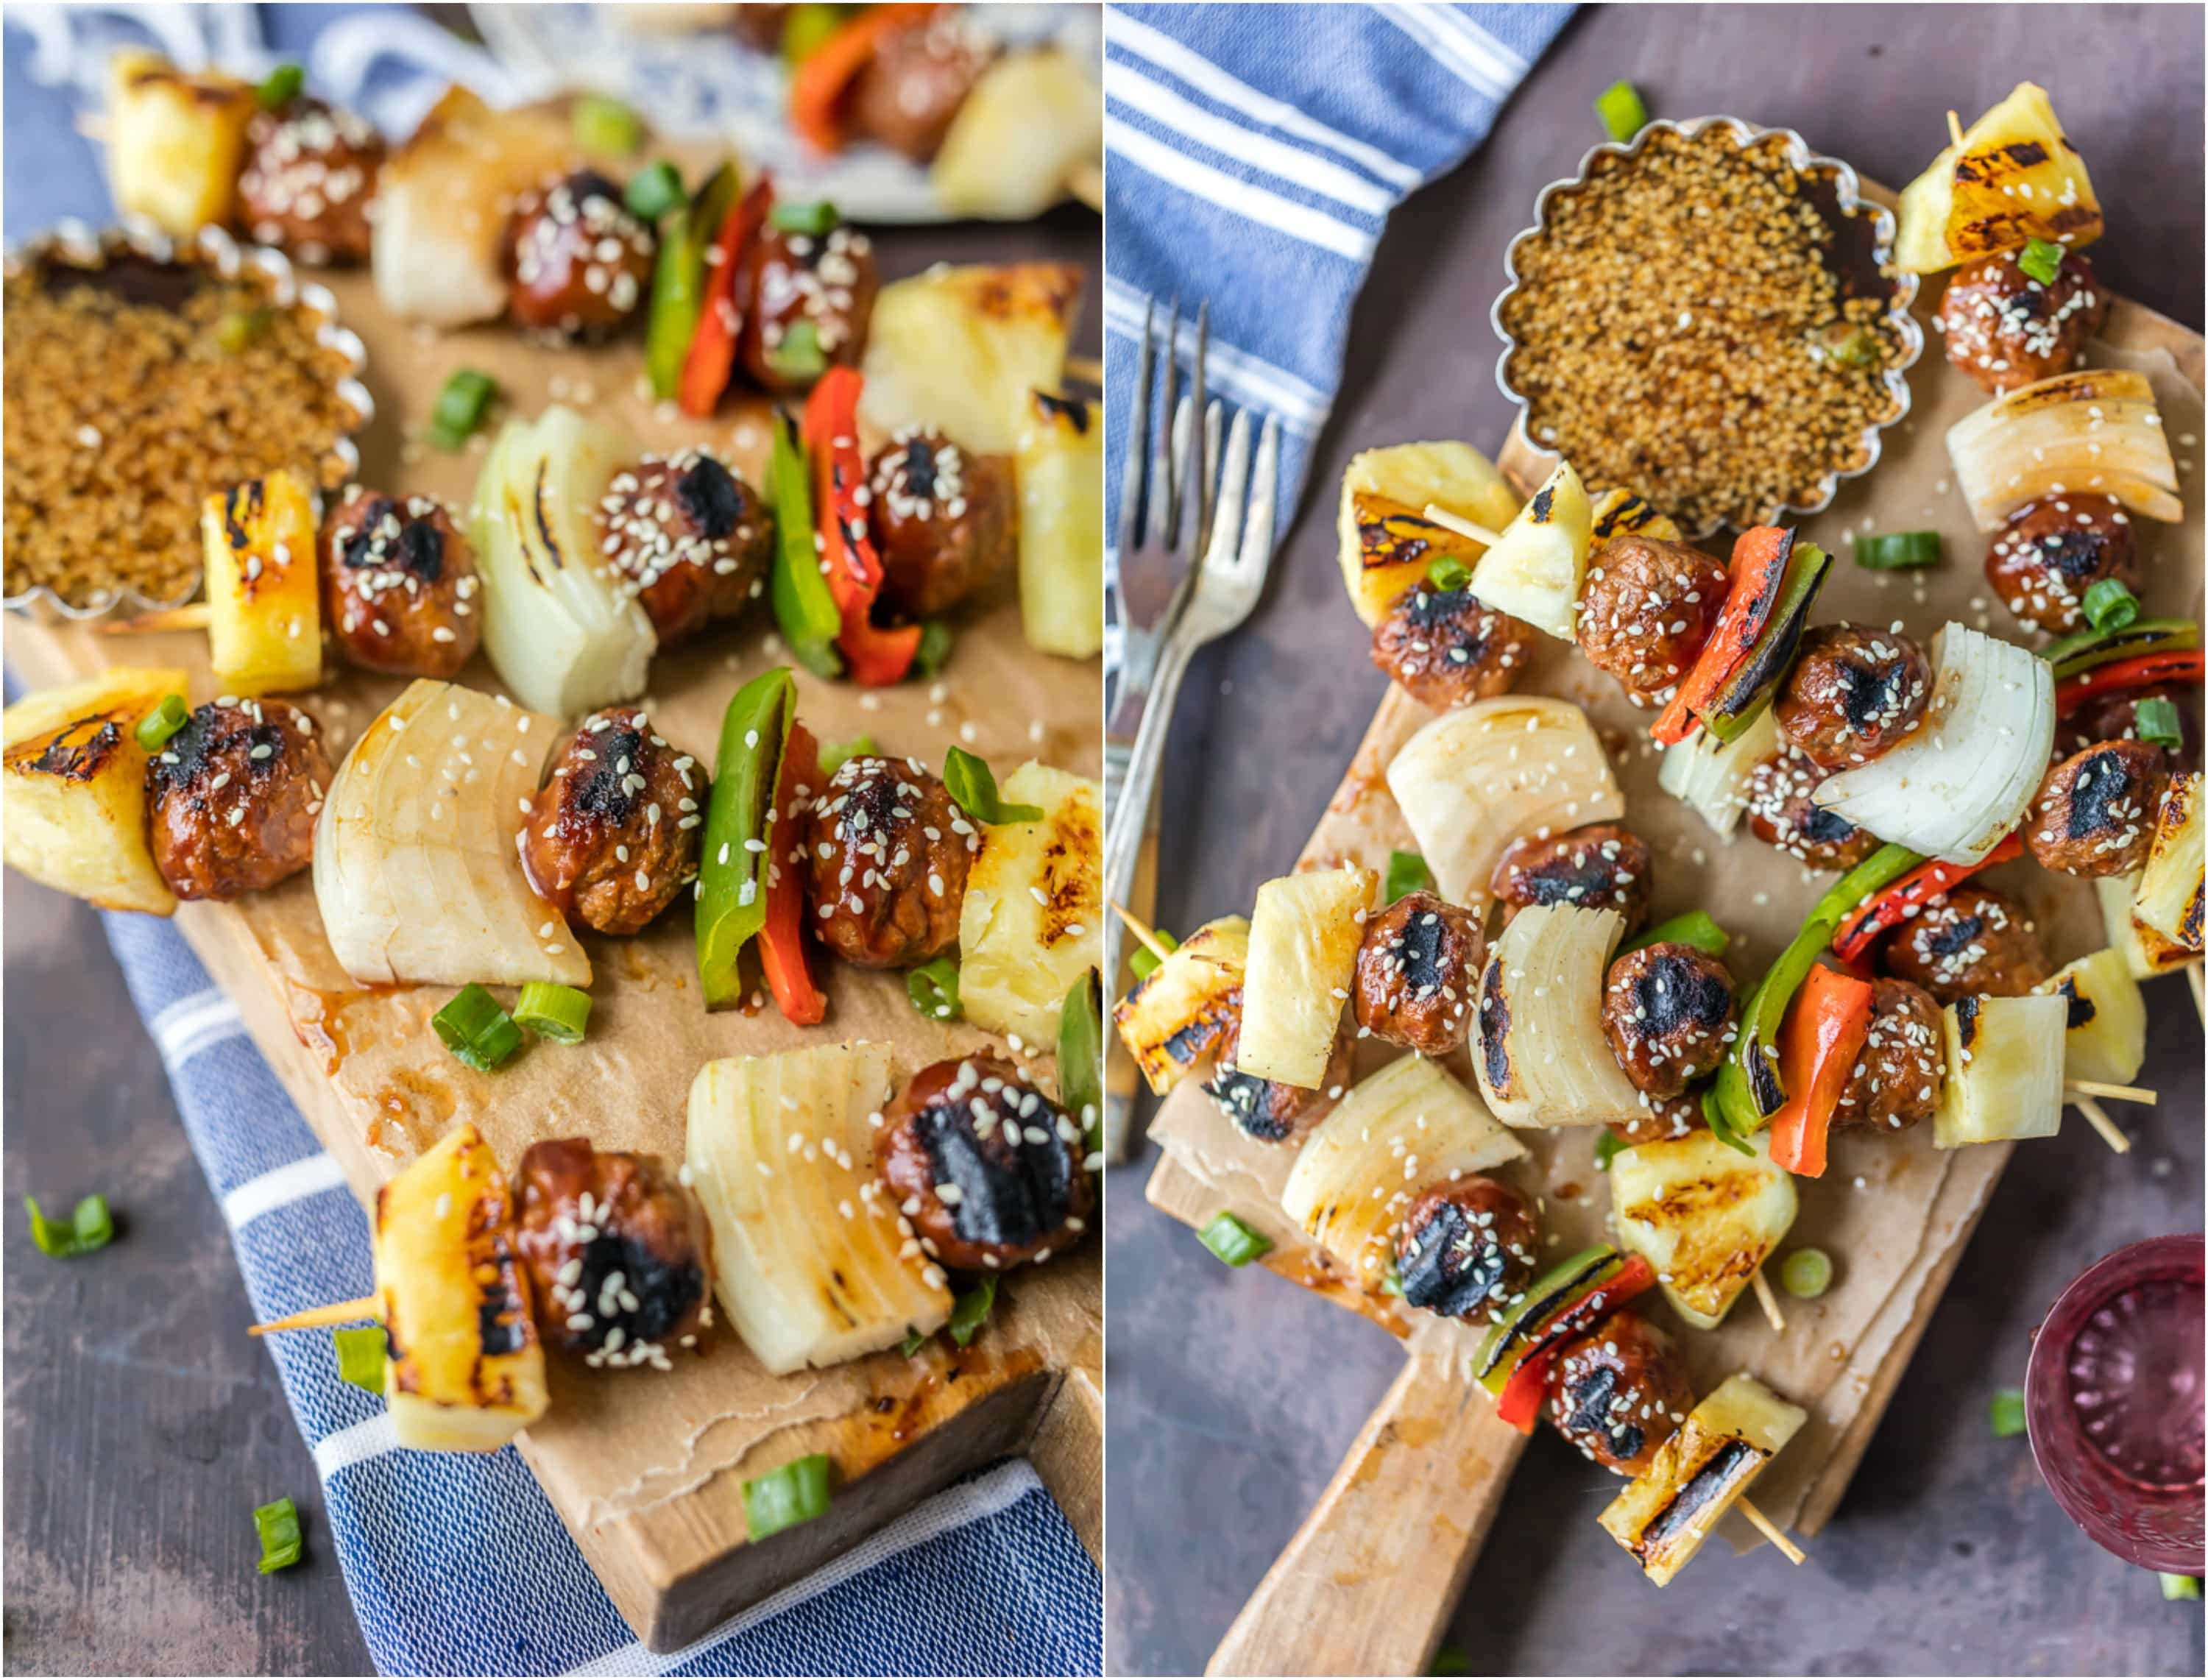 Fire up the grill for CHICKEN TERIYAKI MEATBALL SKEWERS! Loaded with grilled onion, peppers, pineapple, and chicken meatballs! Healthy and delicious meal. Fire up the grill for CHICKEN TERIYAKI MEATBALL SKEWERS! Loaded with grilled onion, peppers, pineapple, and chicken meatballs! Healthy and delicious meal.